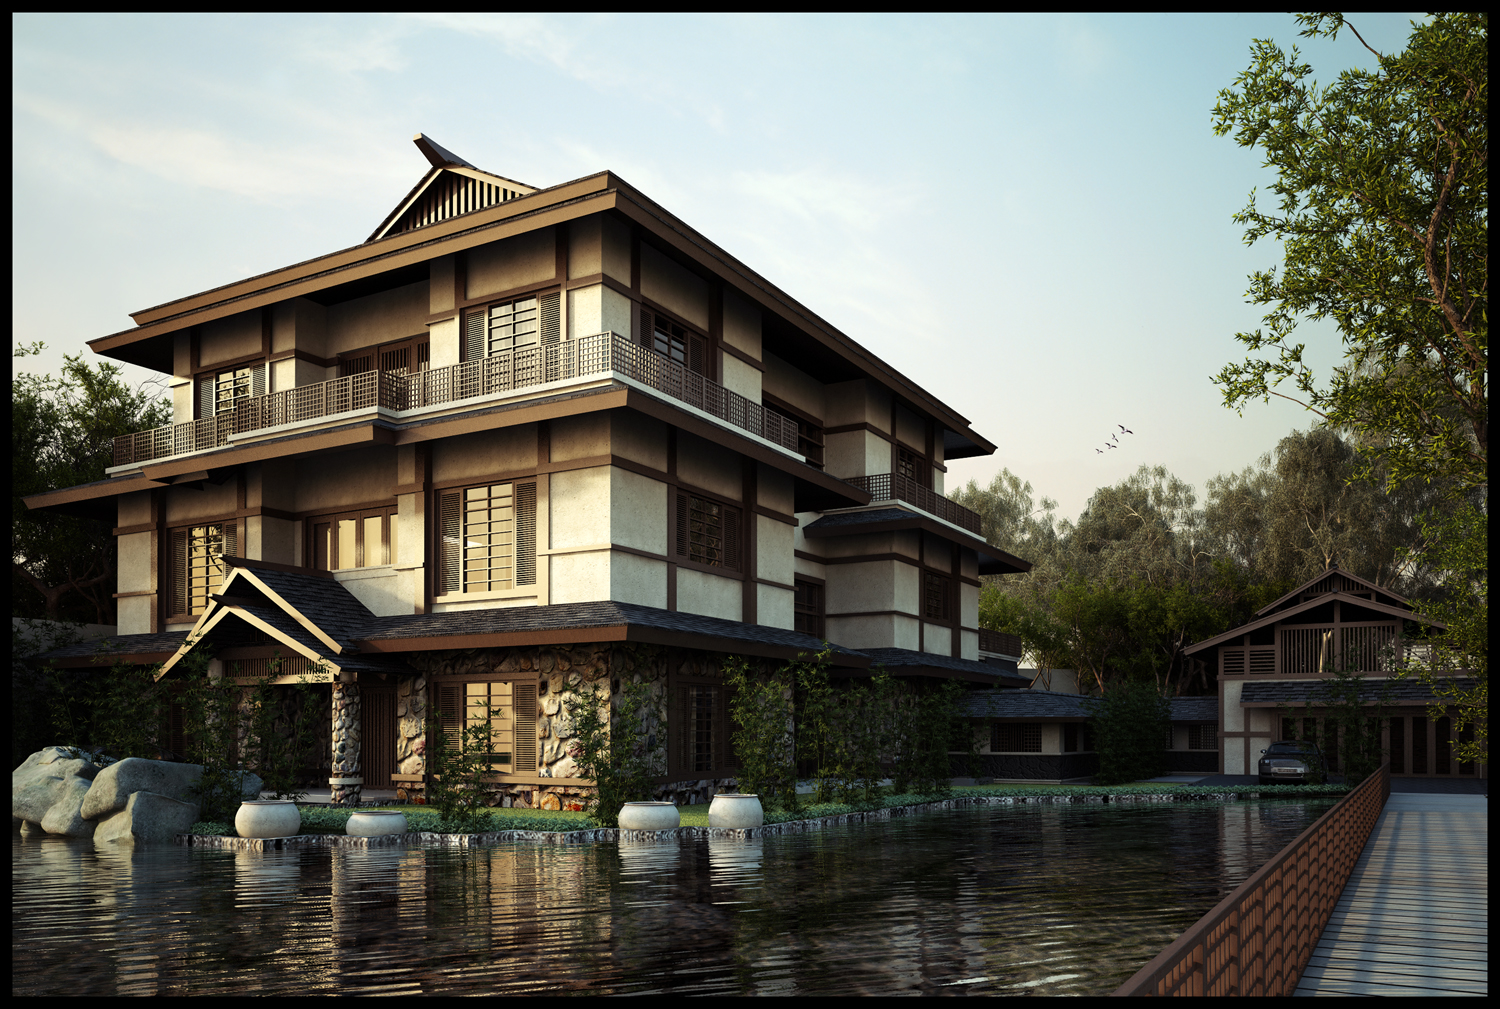 28 Japanese Style Home The Wabi House Japanese Architecture